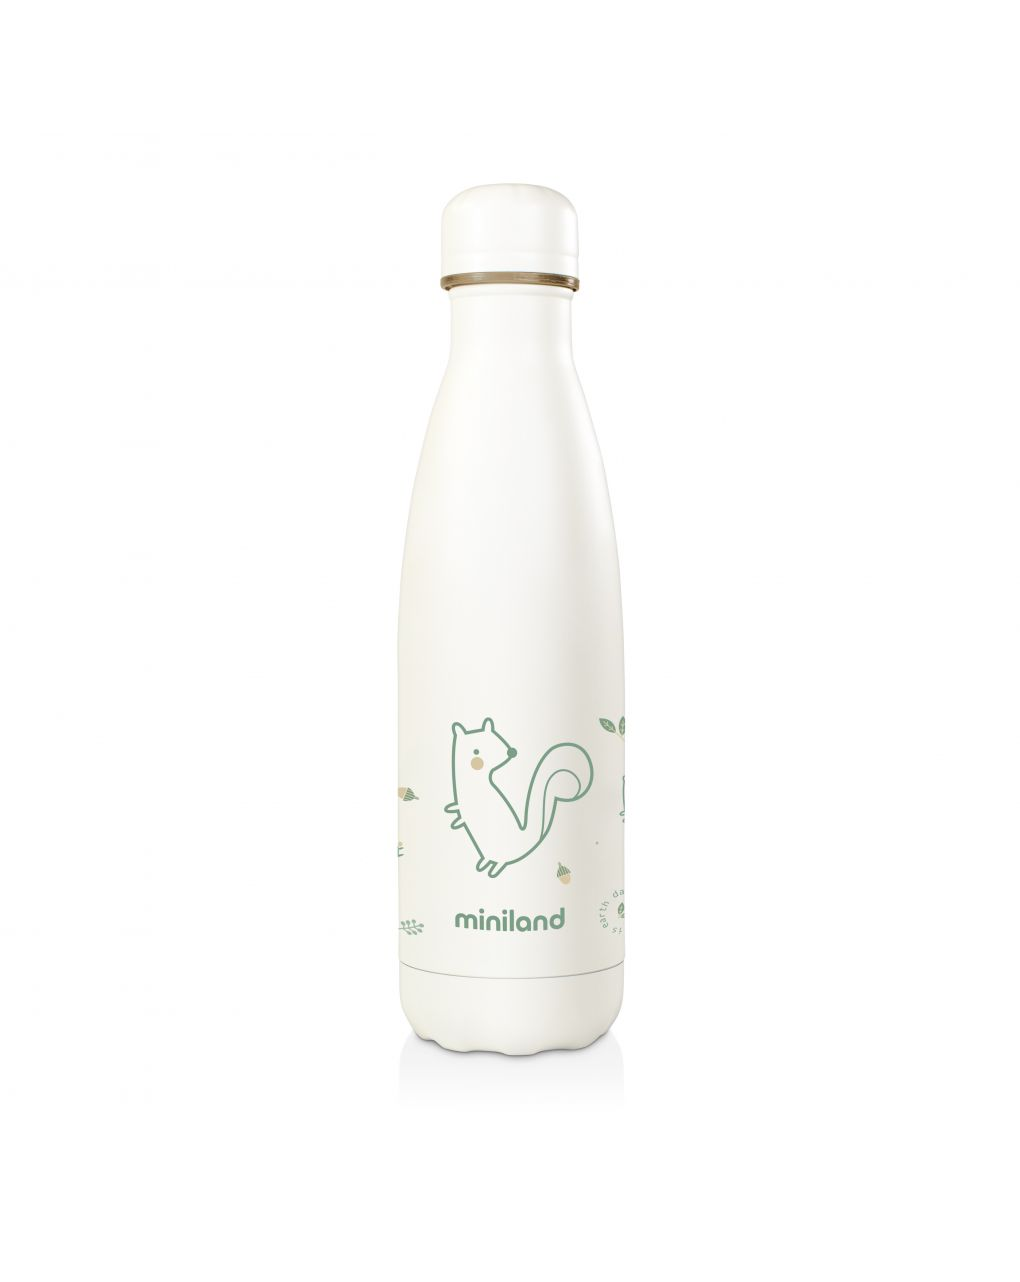 Natur bottle chip 500 ml - Miniland